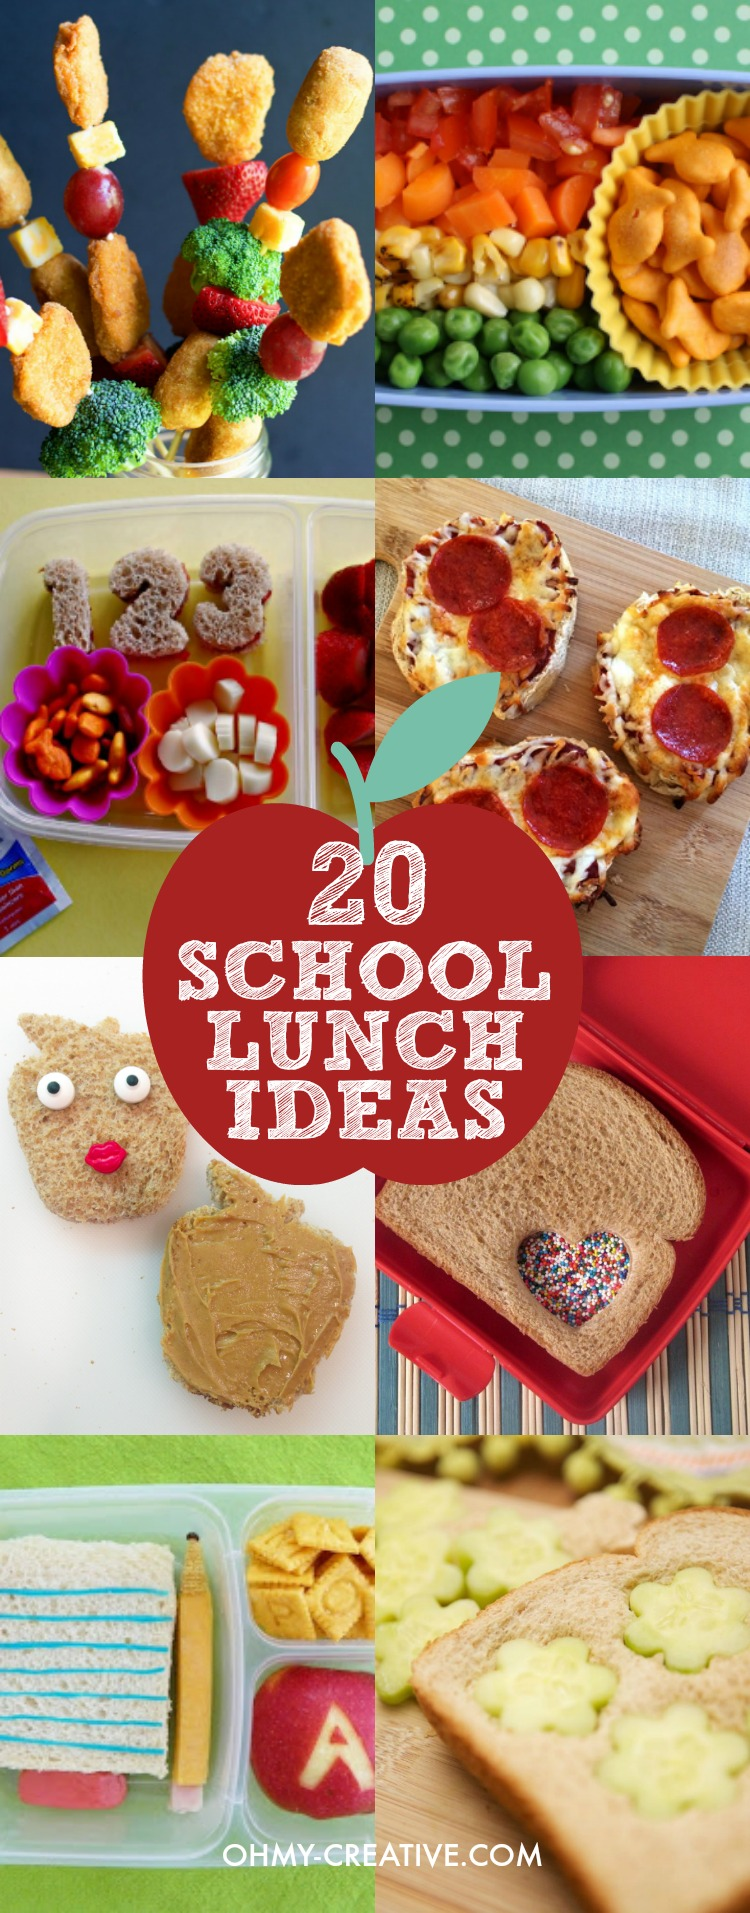 It can be such a drag to come up with new lunch ideas for school. Especially when it seems like you are making the same thing day after day. The kids get bored with them too! Here are 20 Creative School Lunch Ideas that will sure to be kid-pleasers - and as parents, we like them to have healthy school lunches! Popular pins by OHMY-CREATIVE.COM